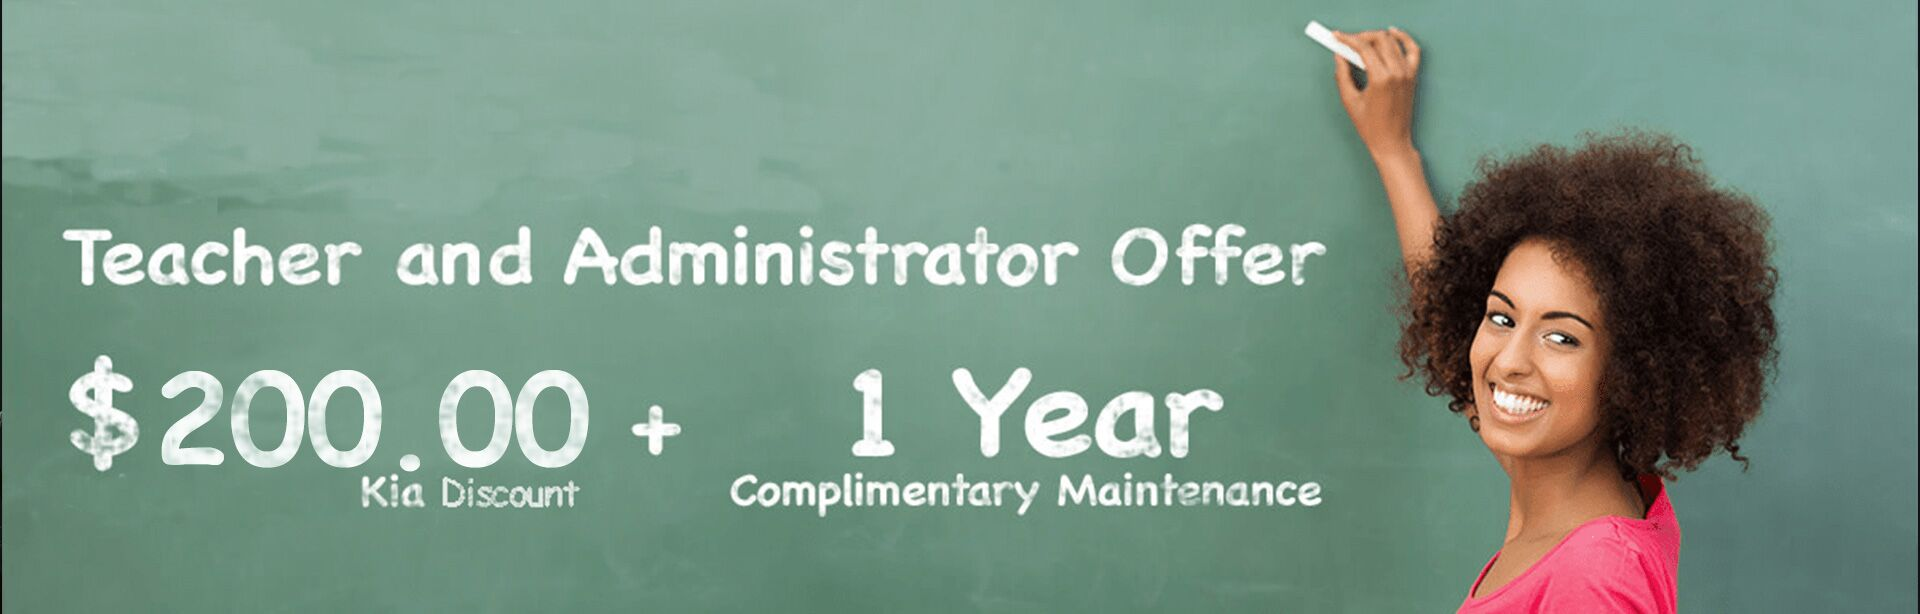 Teacher and Administrator Offer